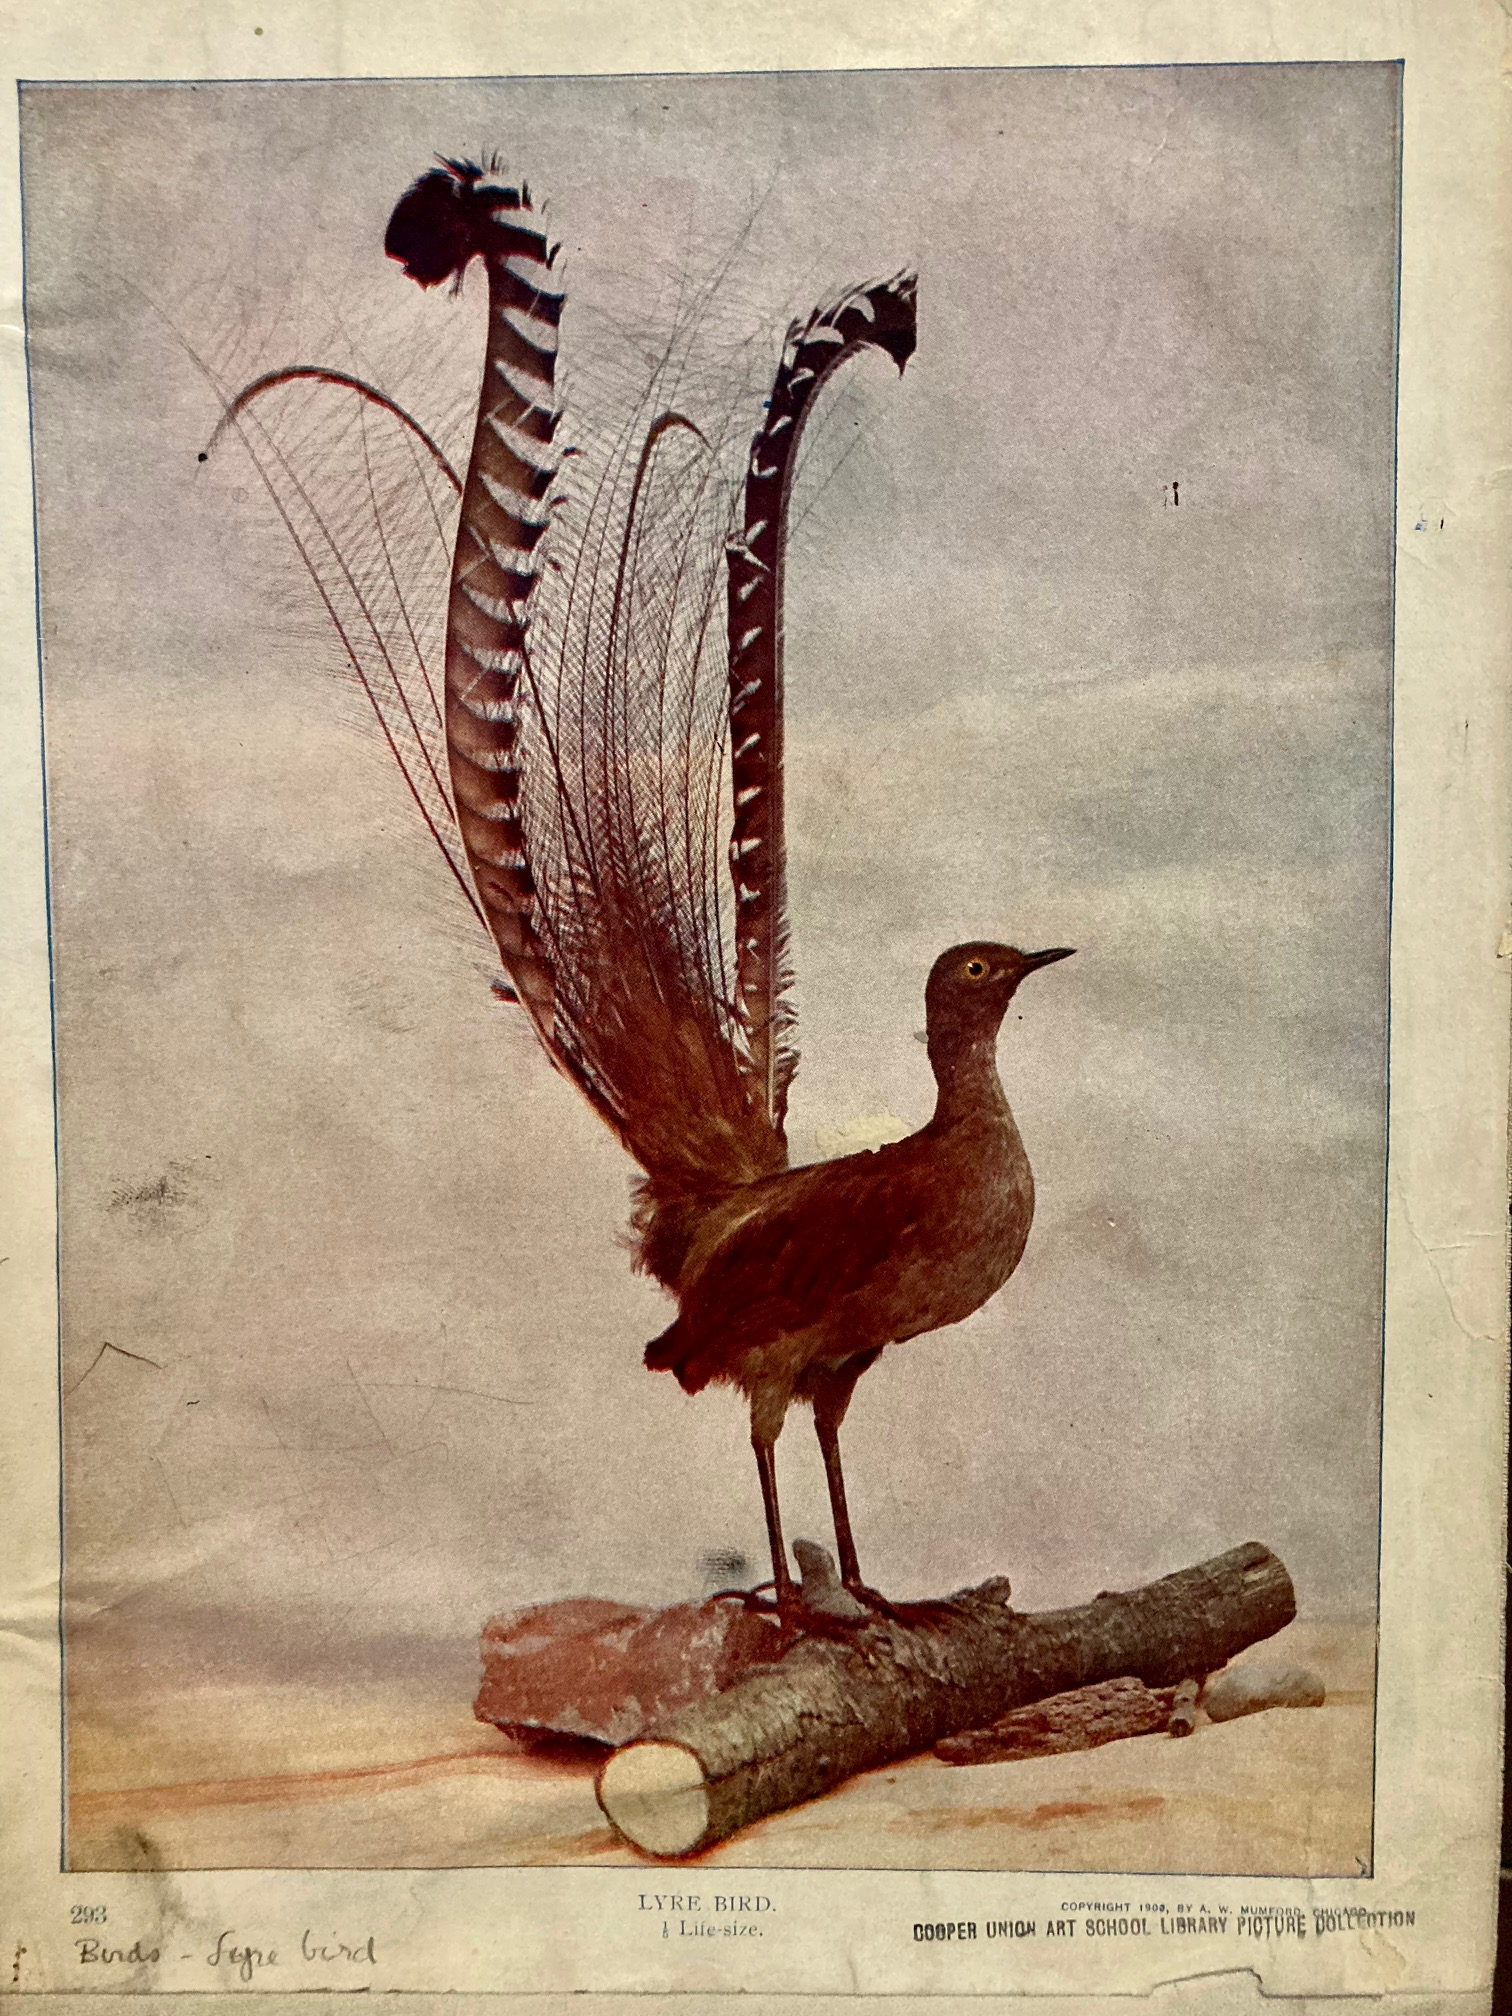 lyre bird - picture collection